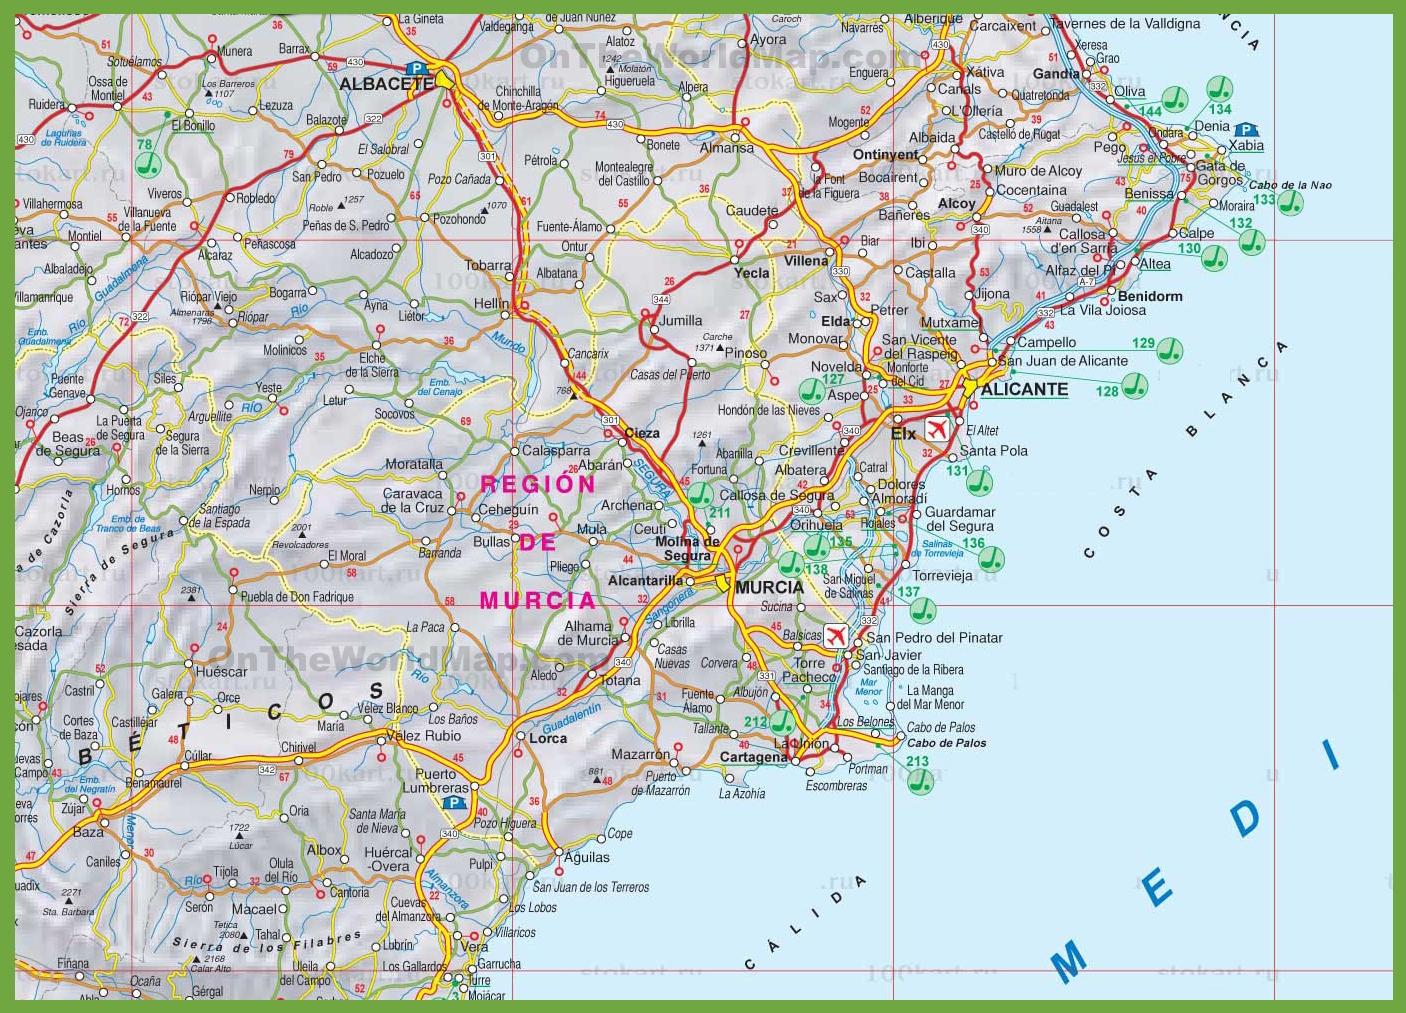 Show Murcia On Map Of Spain.Region Of Murcia Tourist Map